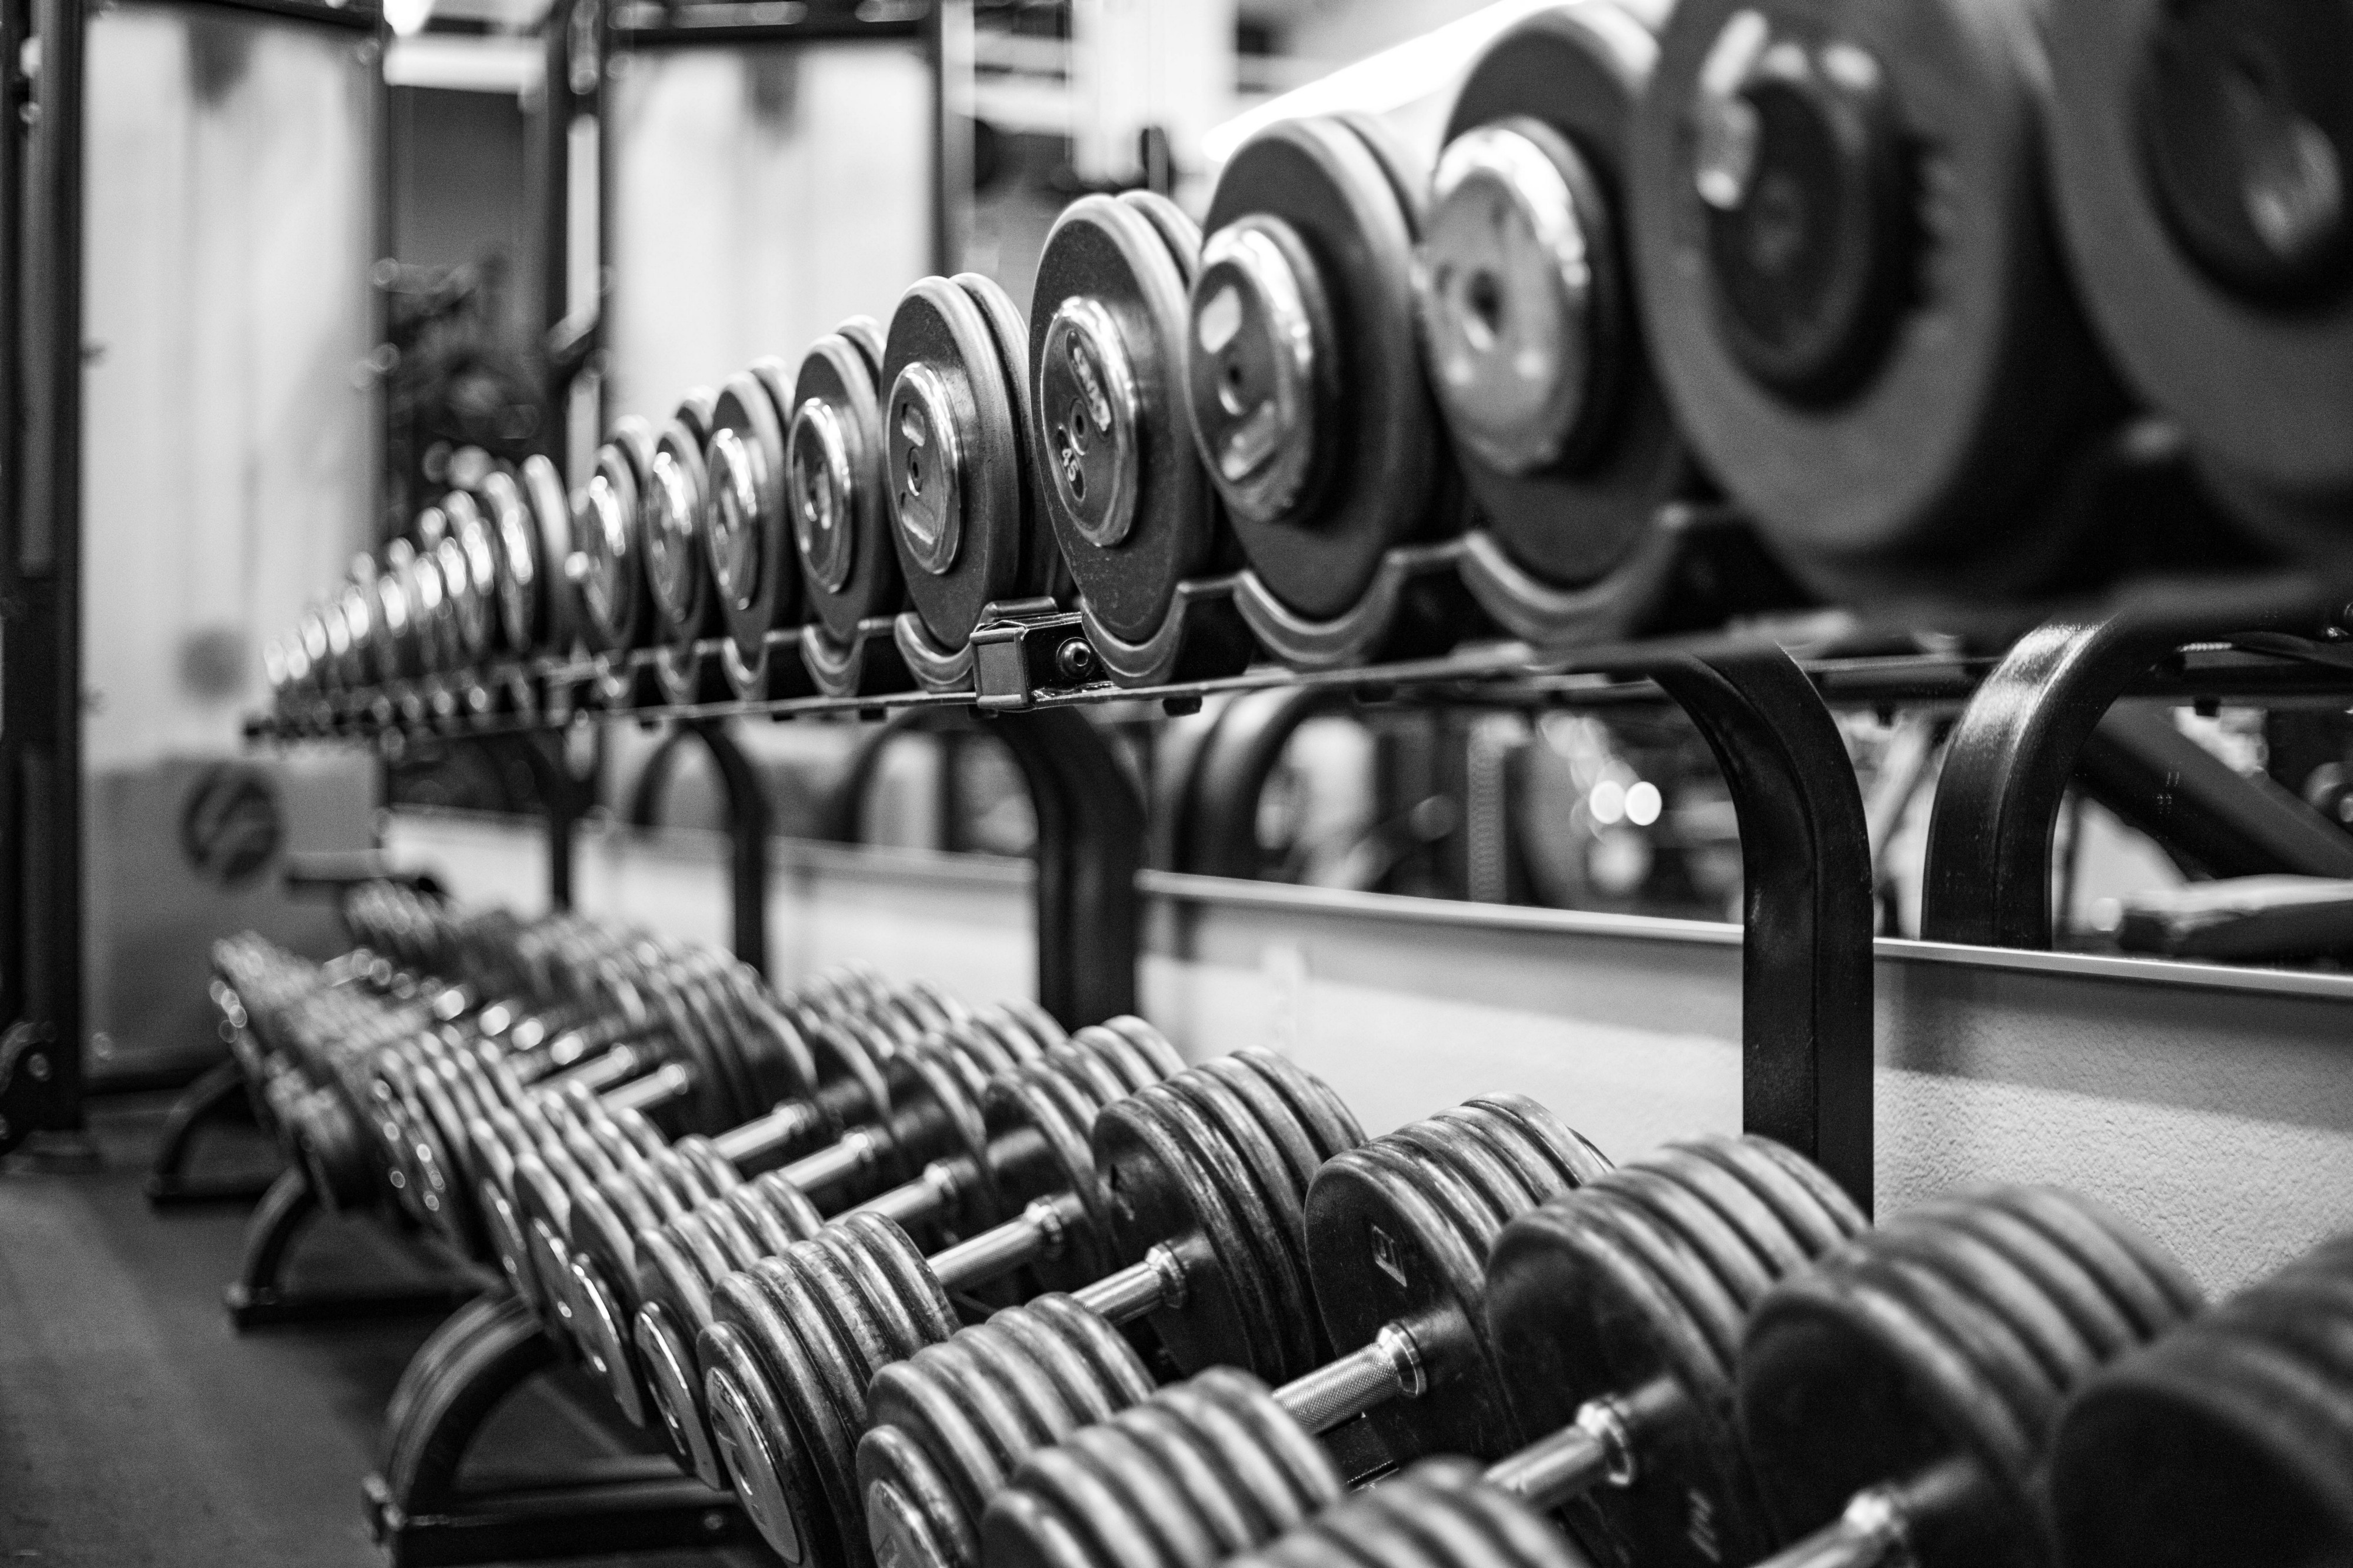 A large rack of free weights.